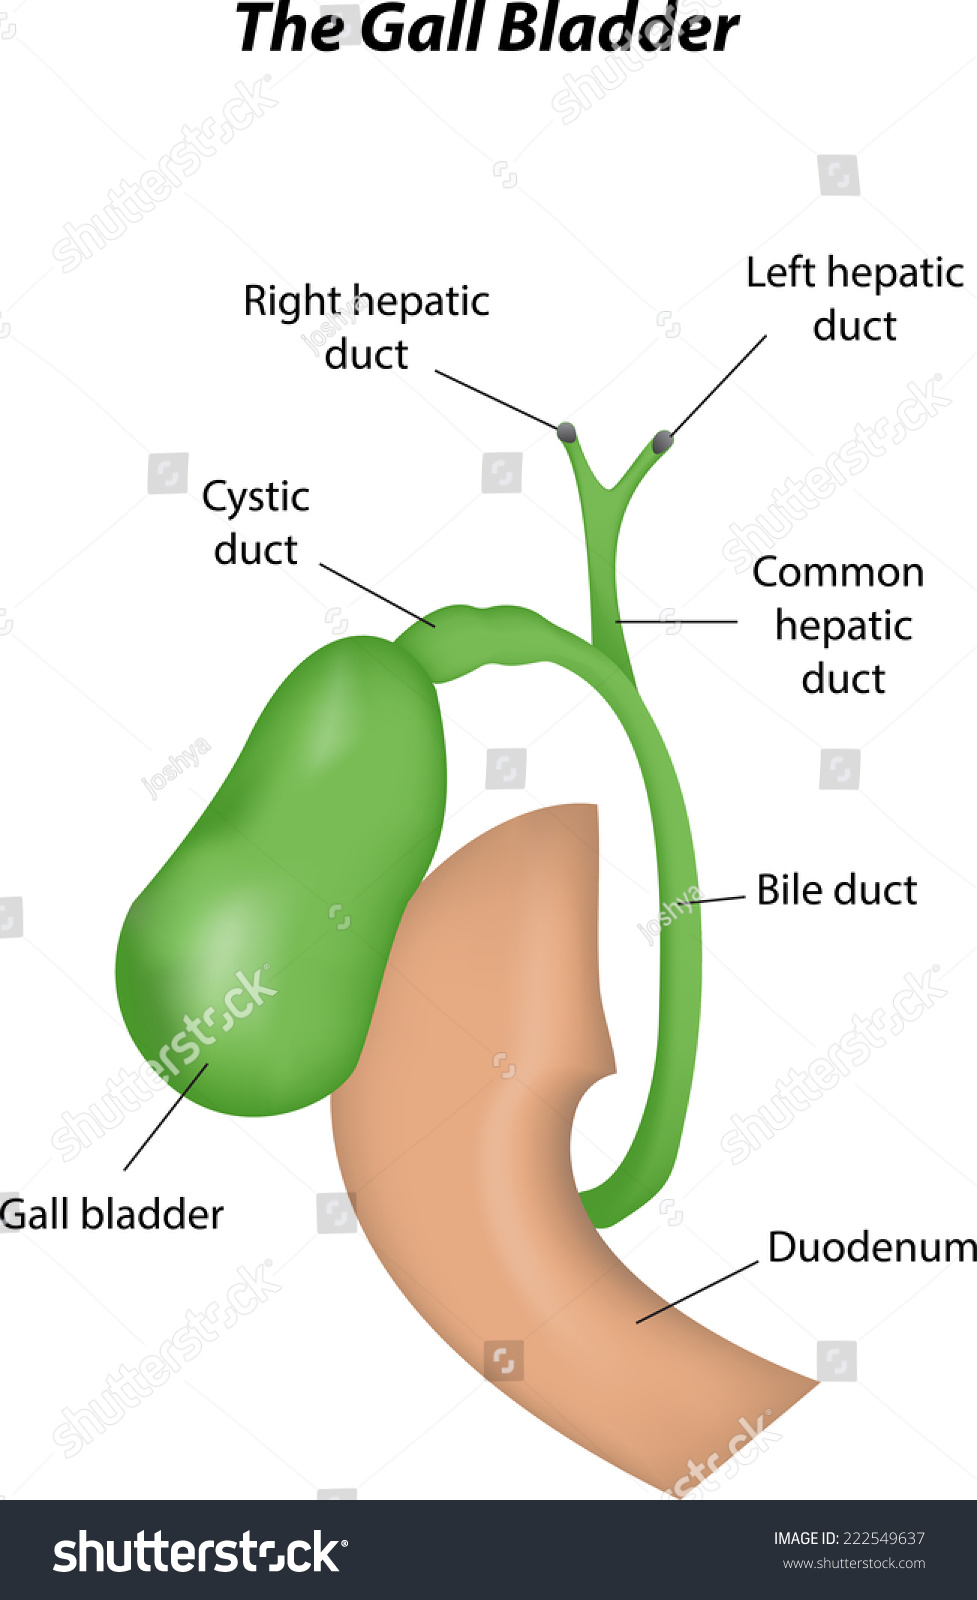 hight resolution of the gall bladder labeled diagram